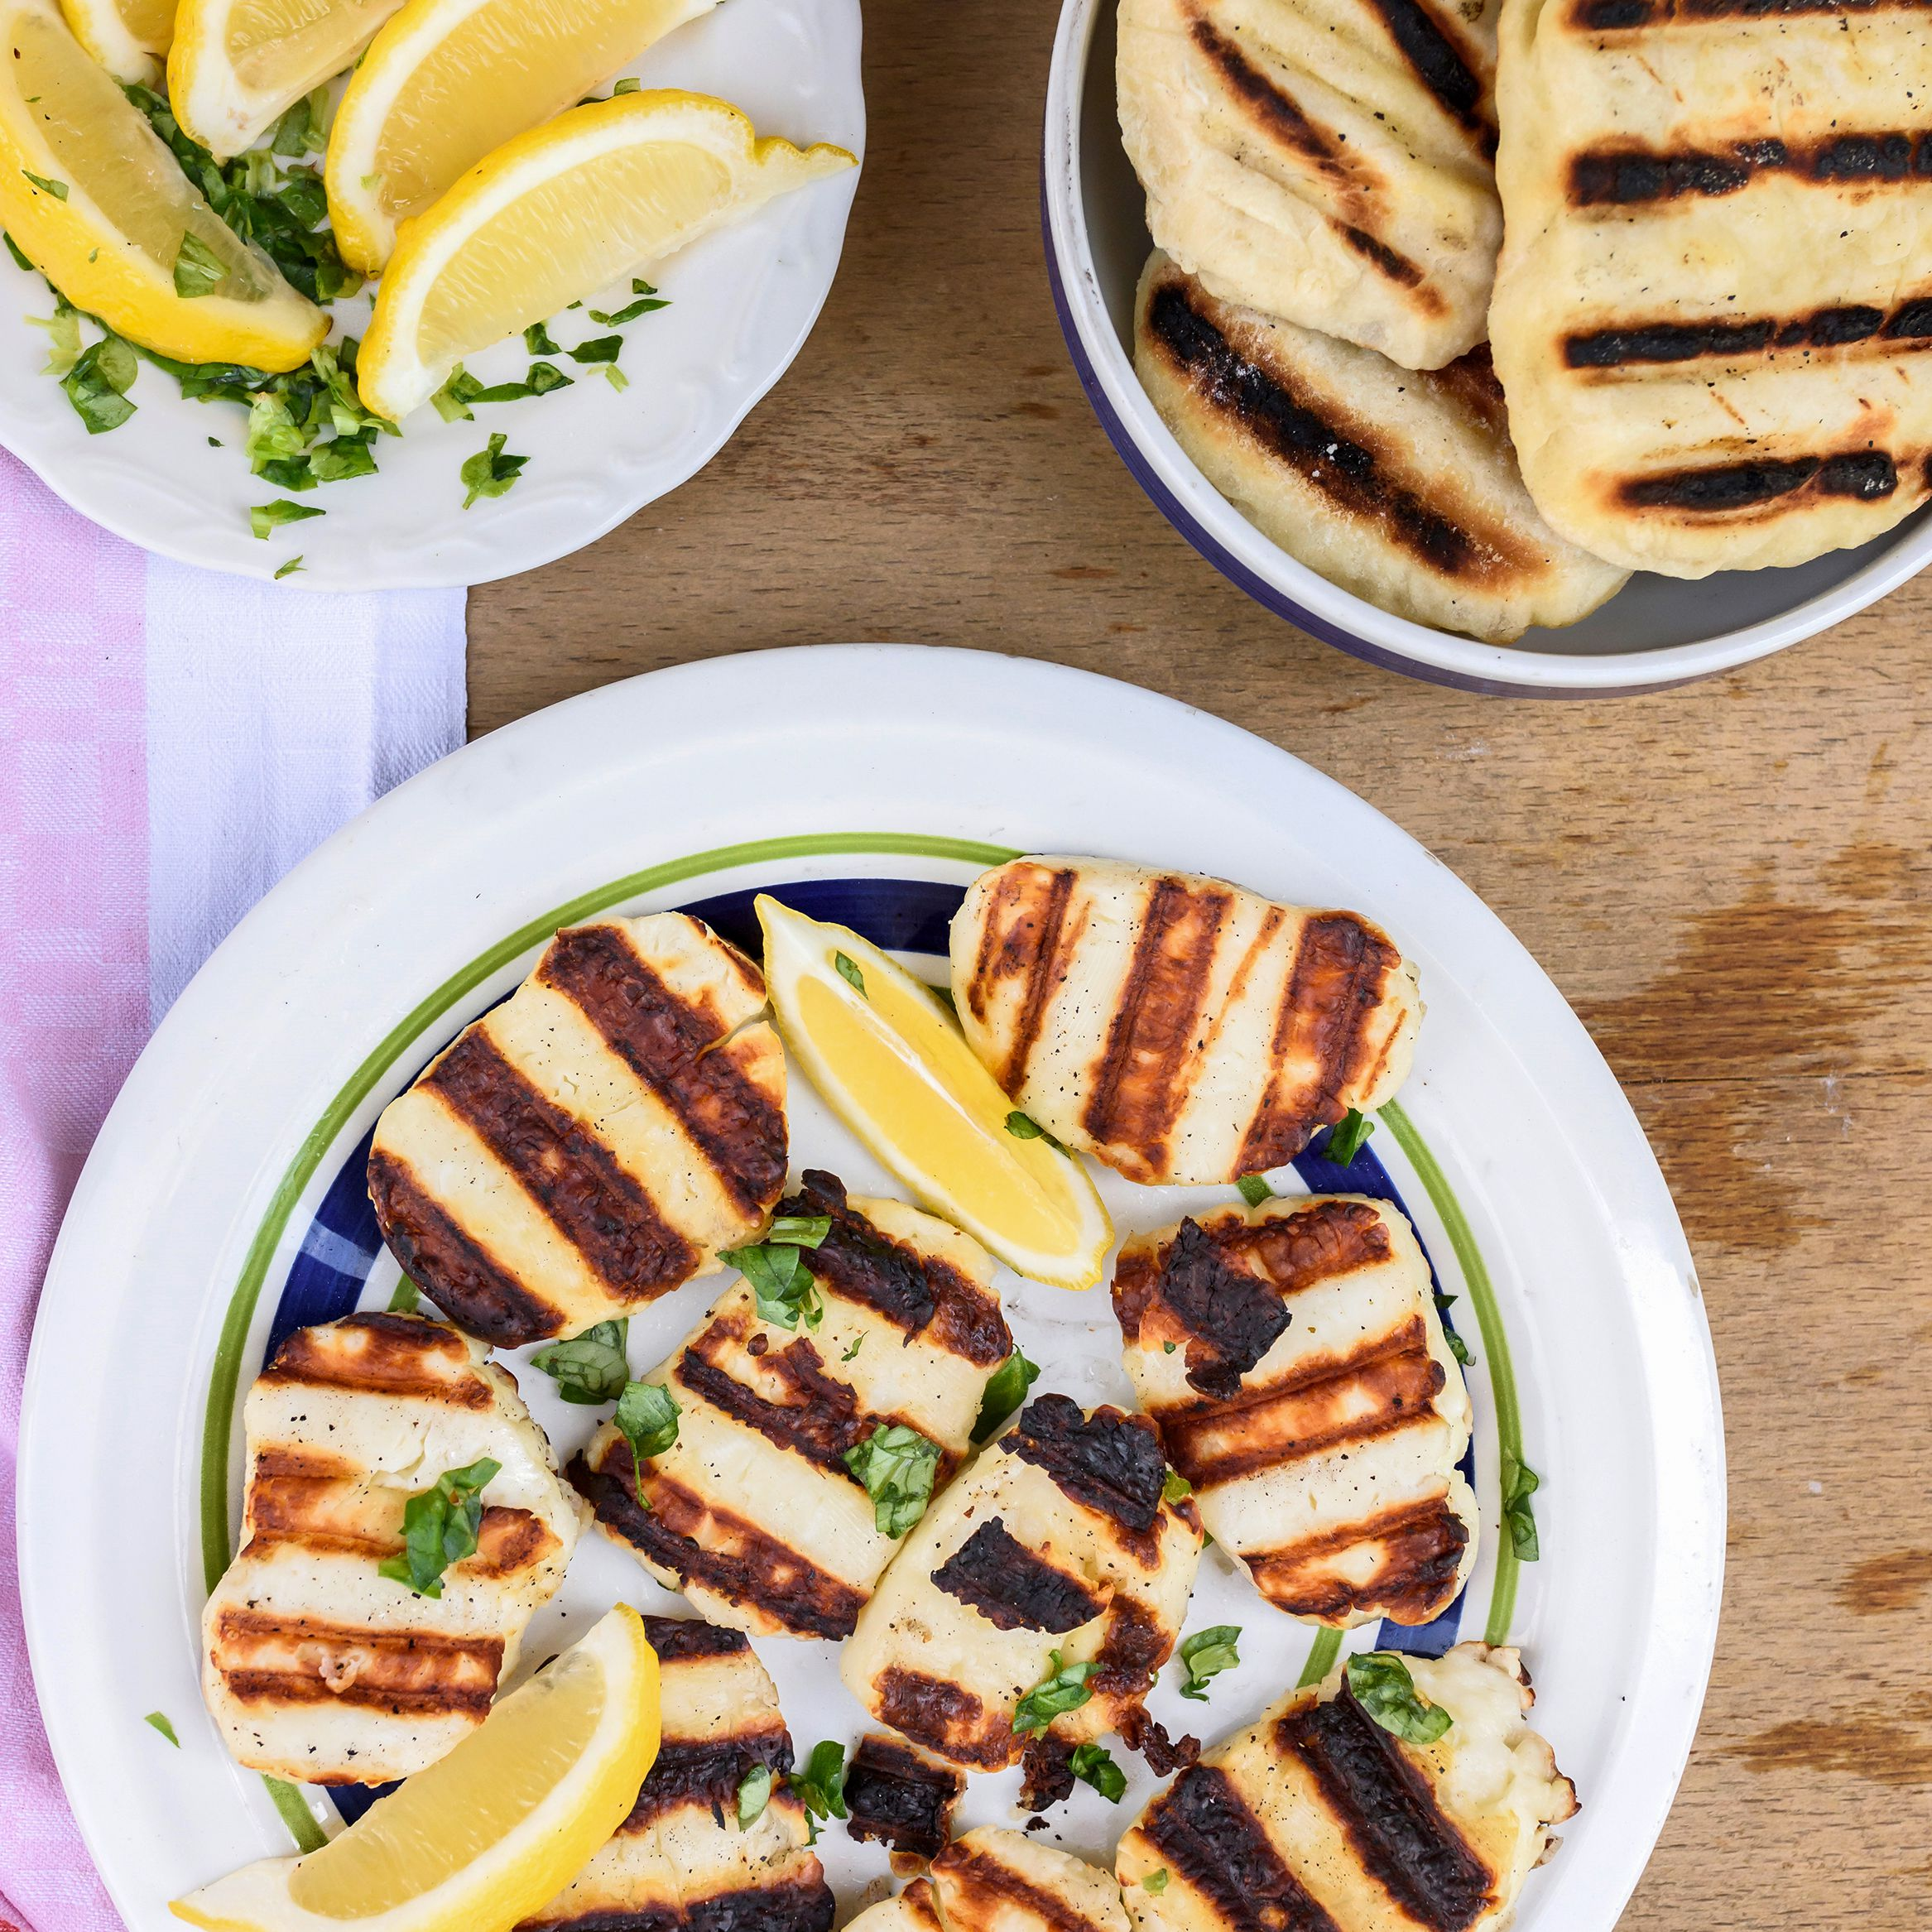 Grilled halloumi cheese and pita bread with lemon wedges